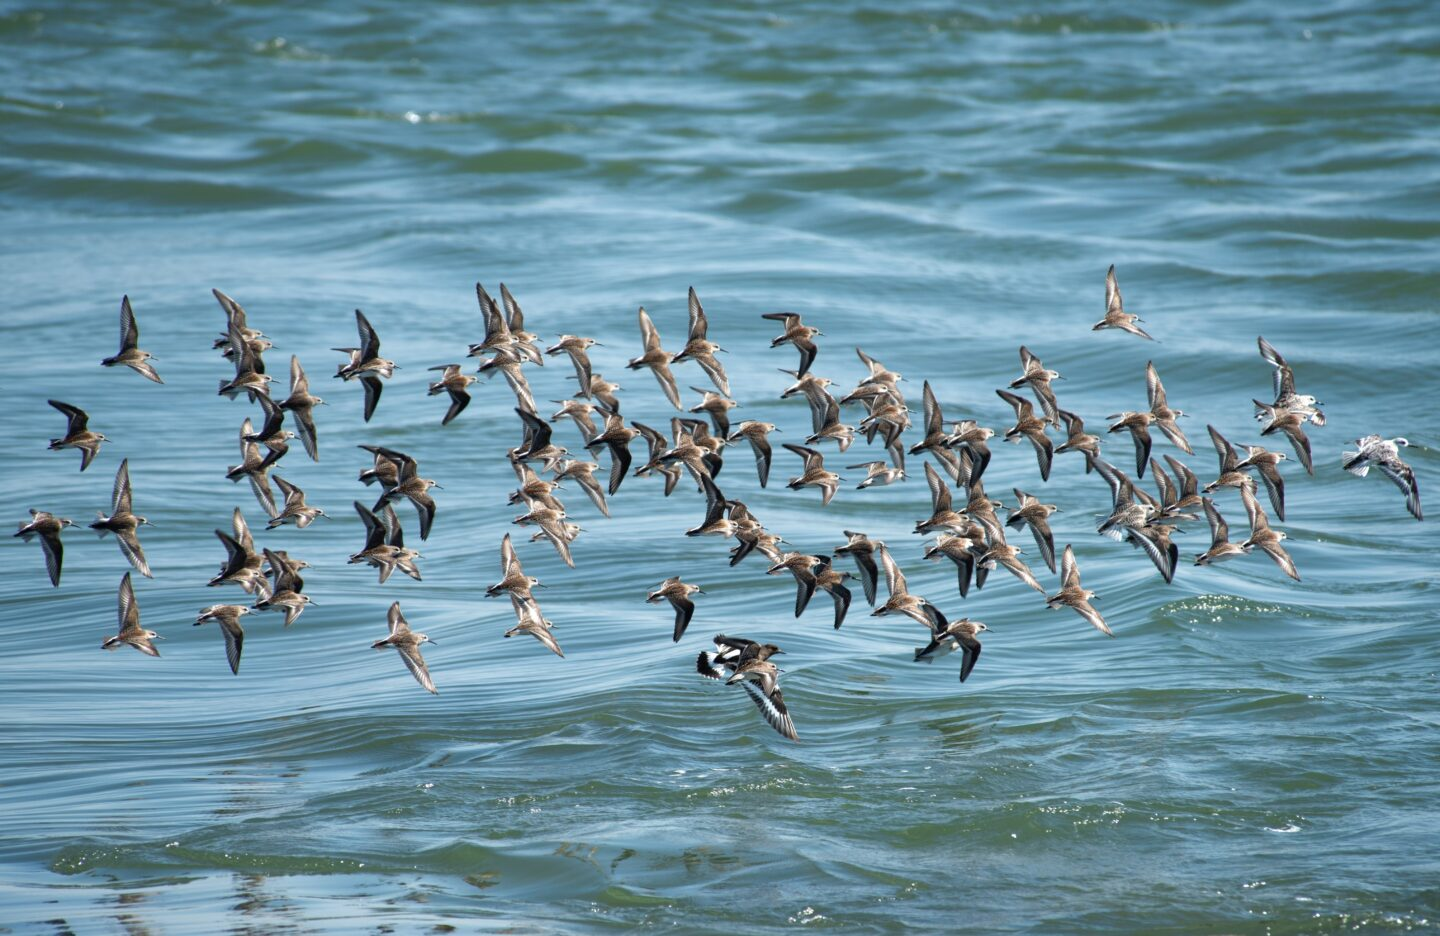 Flock of sandpipers flying over the ocean.